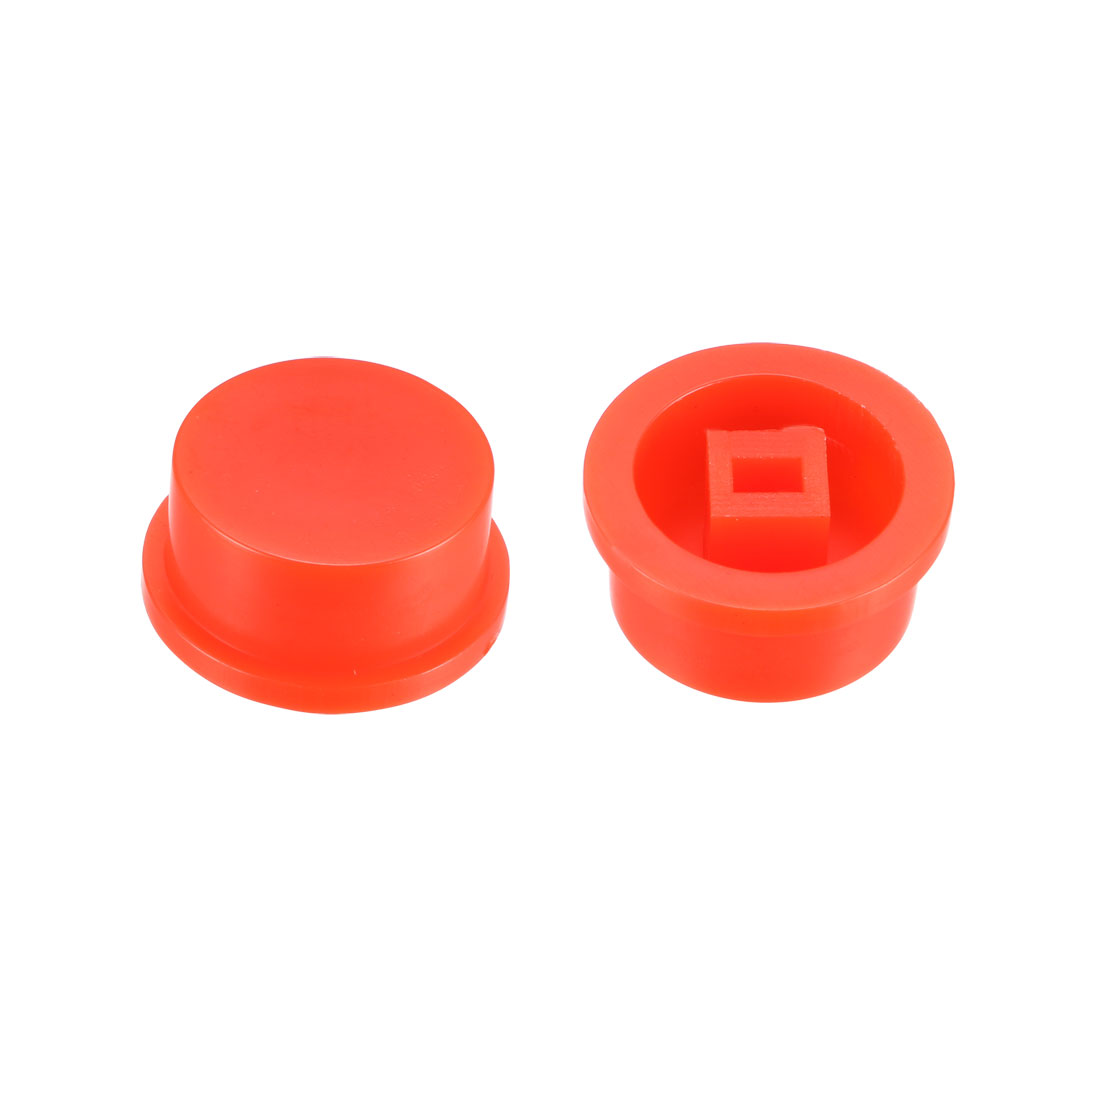 25Pcs Plastic 13.5x7.5mm Latching Pushbutton Tactile Switch Caps Cover Red